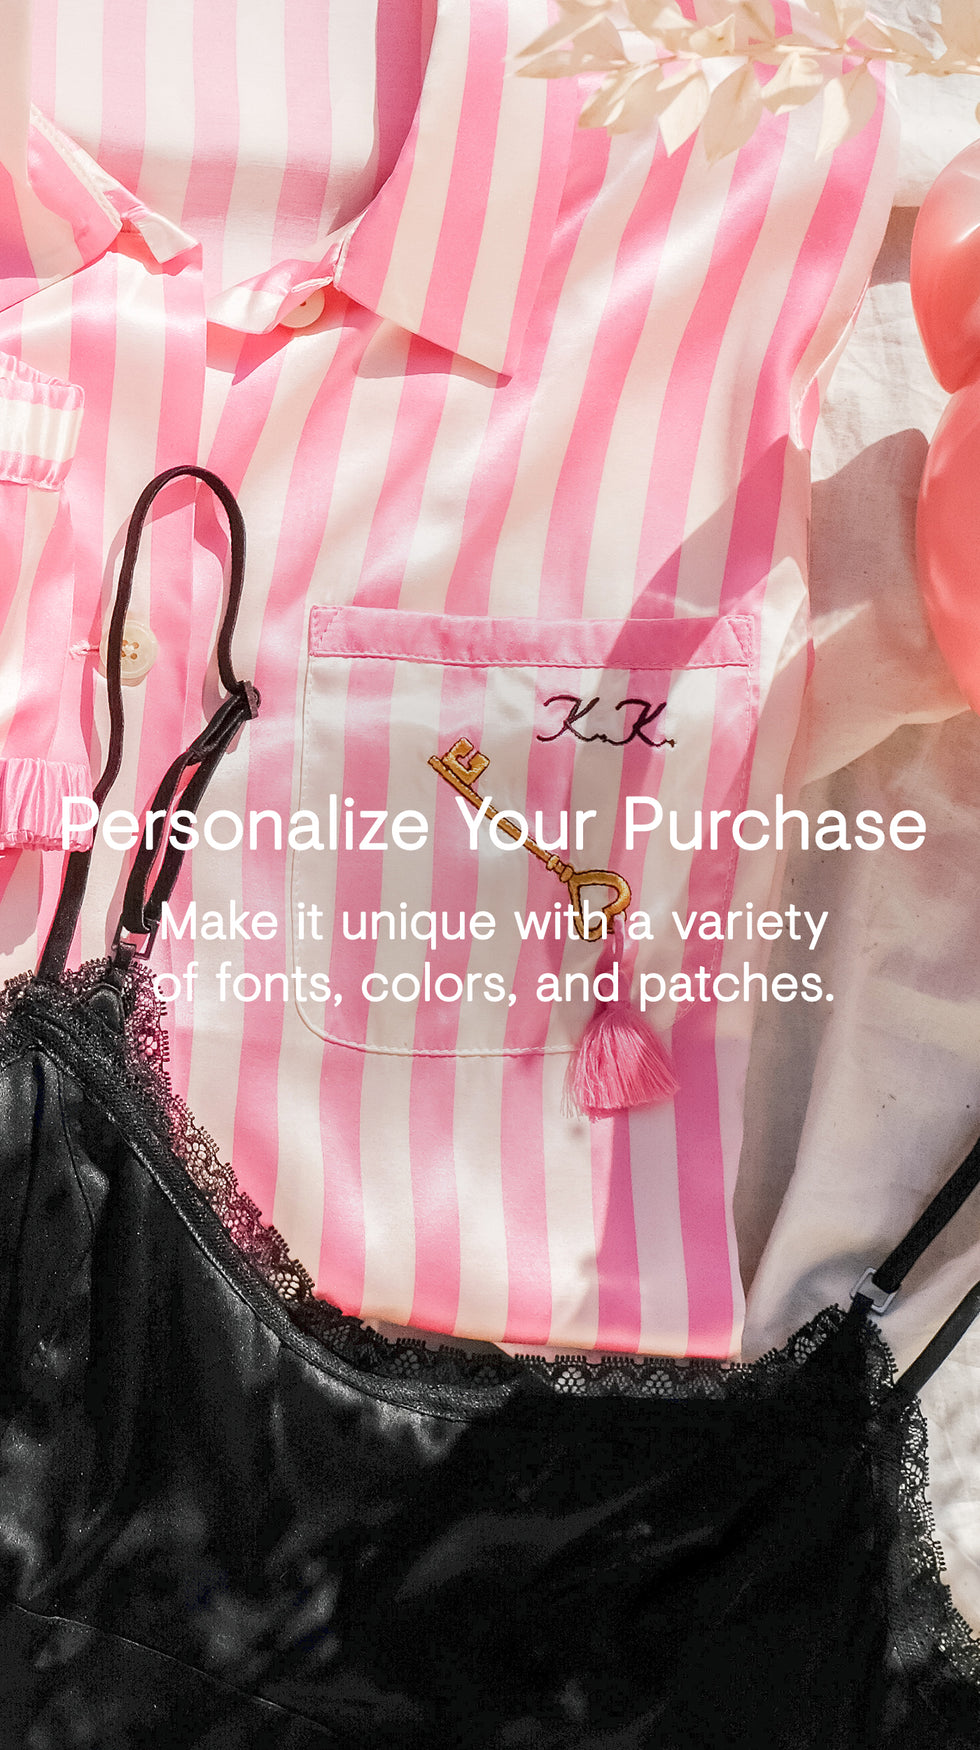 personalize your purchase